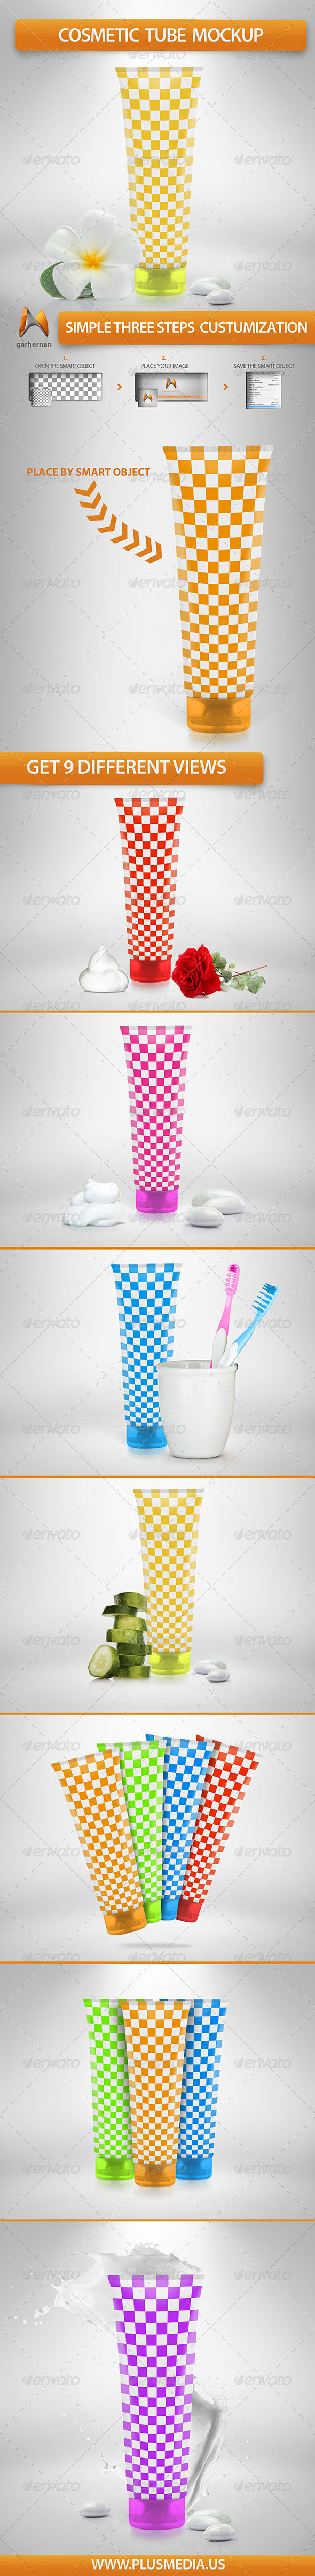 GraphicRiver Cosmetic Tube Mockup 6147539